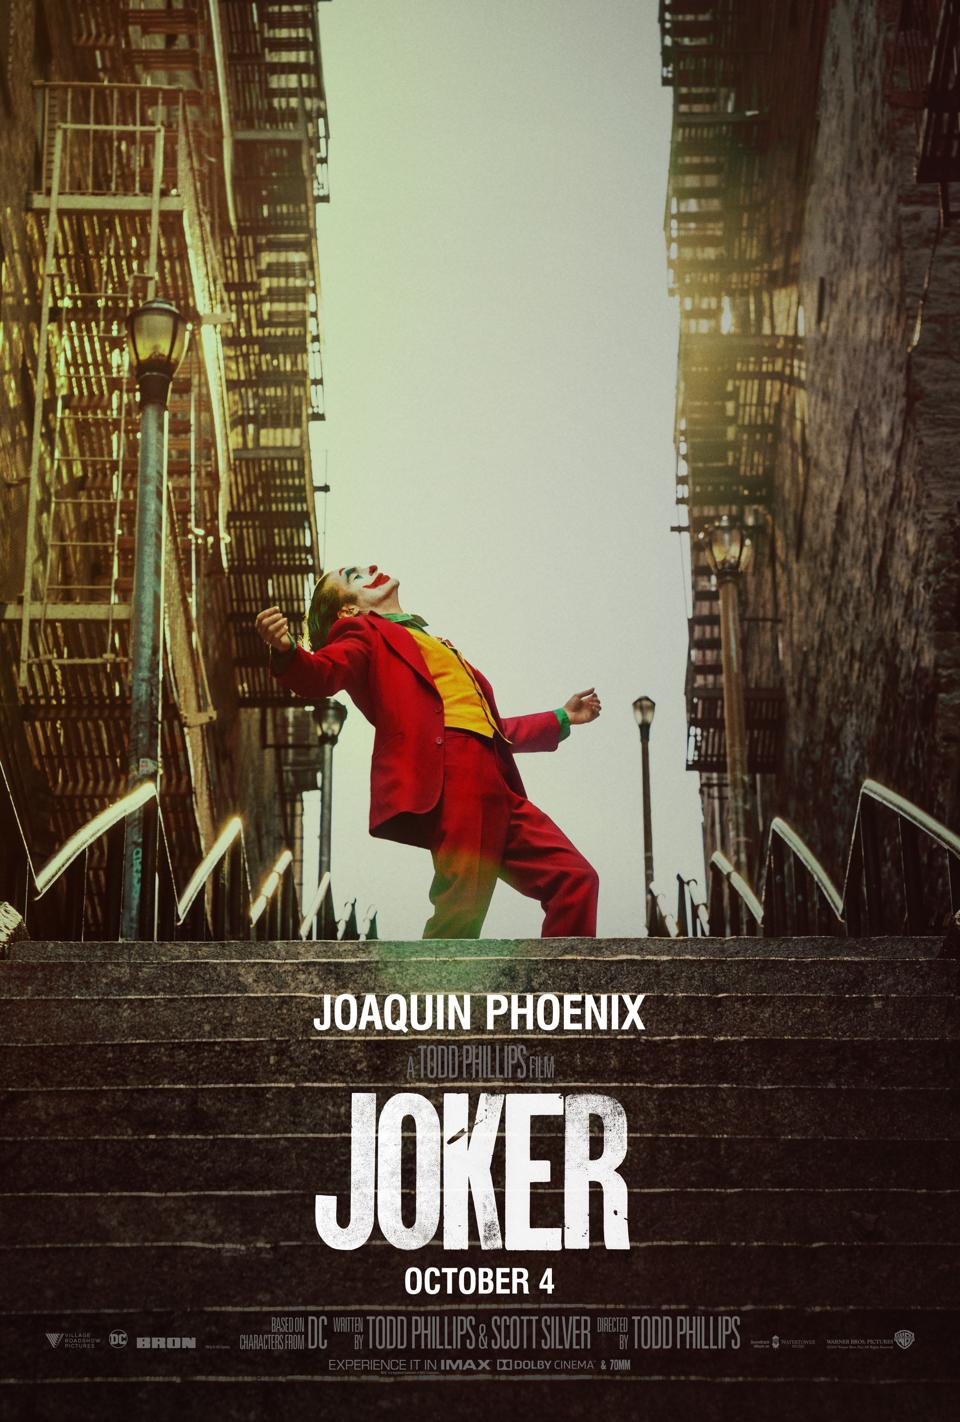 Official poster for Warner's ″Joker″